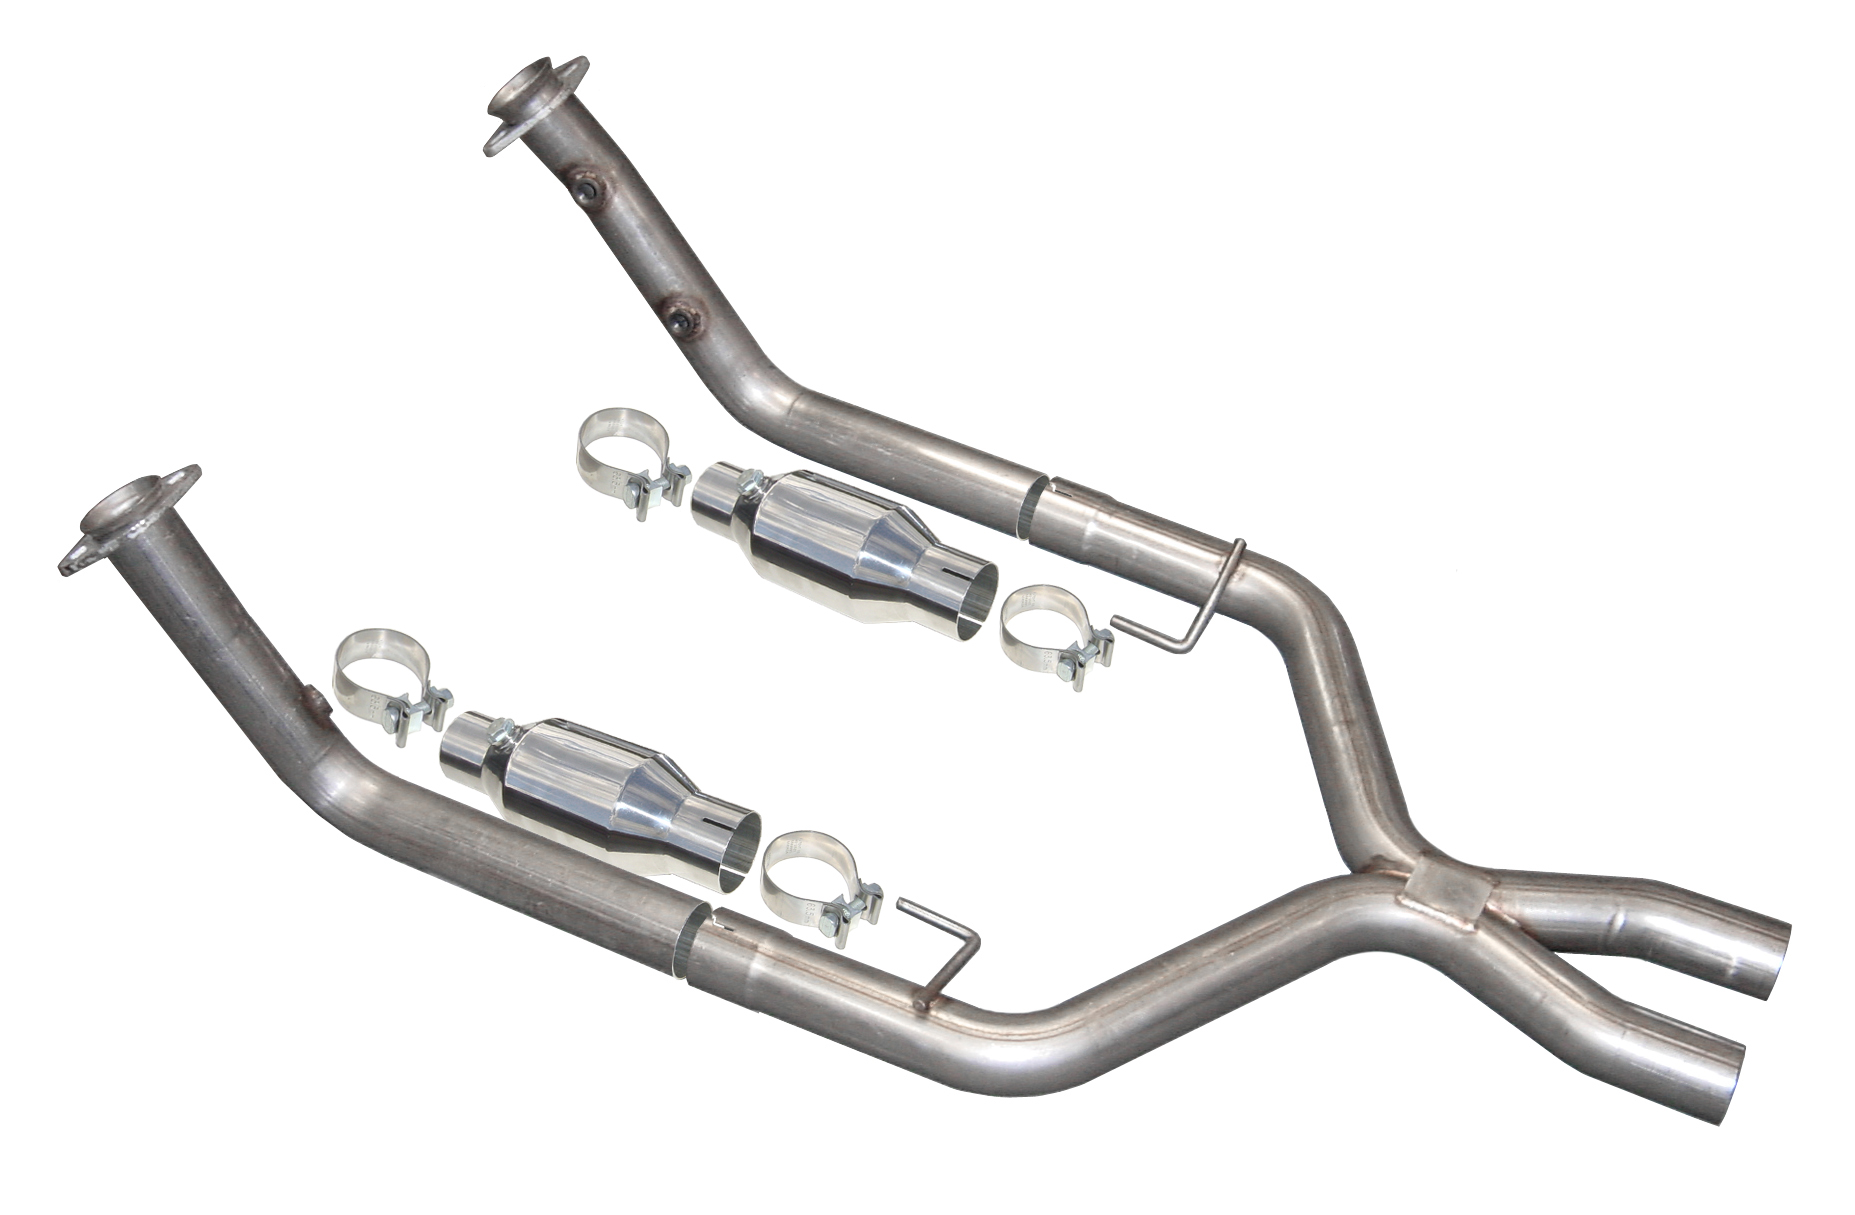 "2005-2010 Mustang GT 4.6L 2.5"" X-Pipe w/ Metallic Cats (for Short Tube Header) - By PYPES"